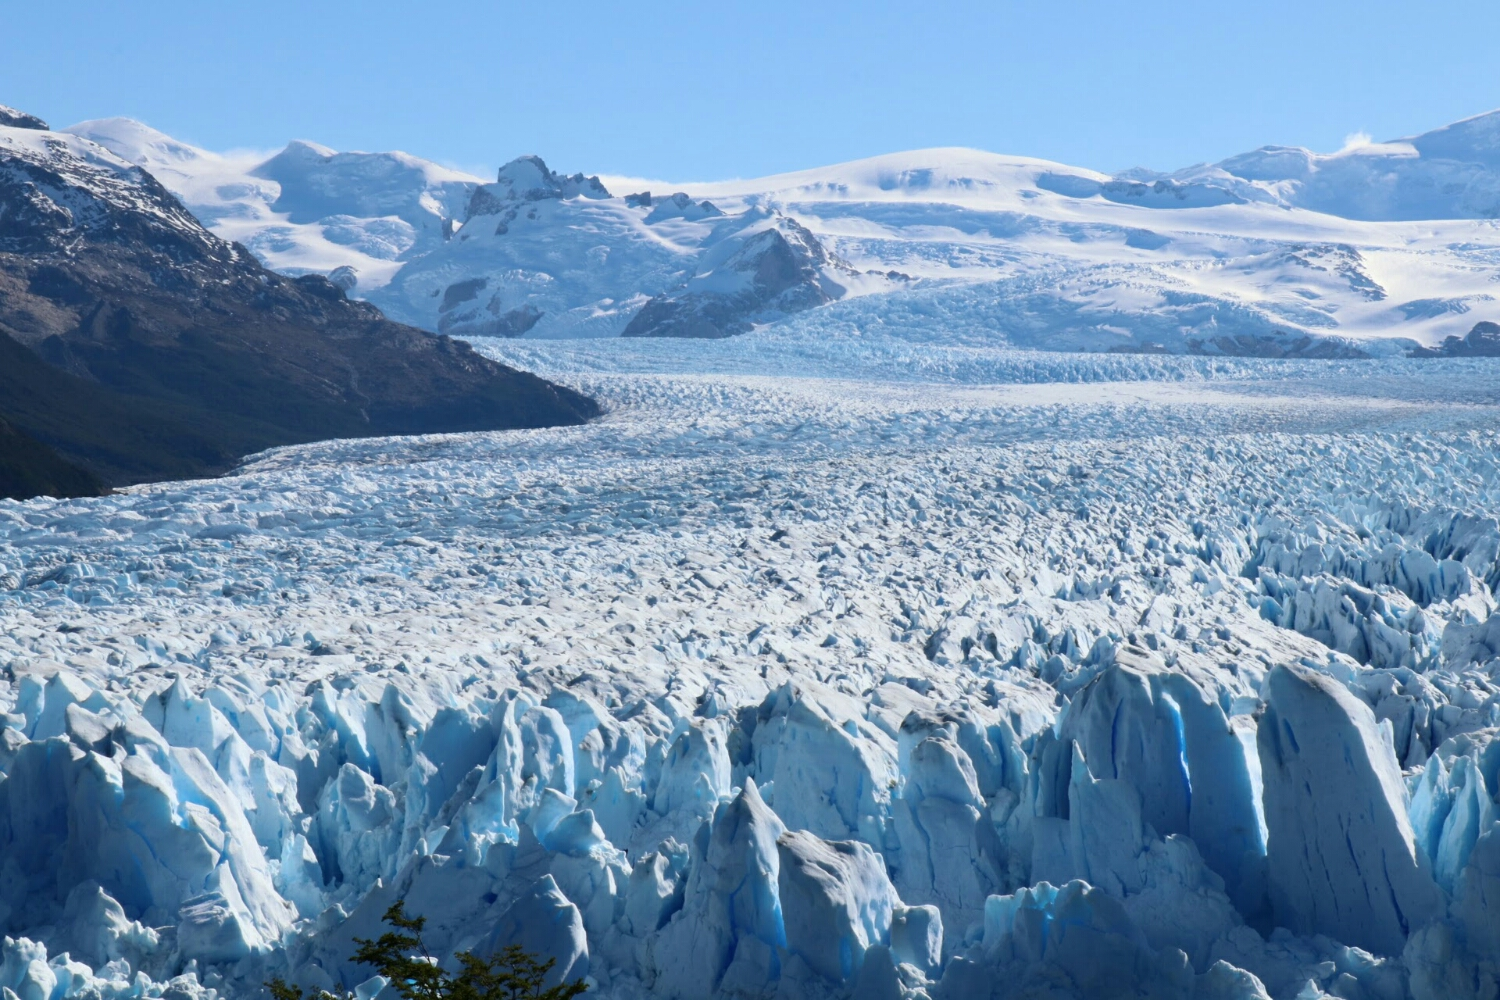 Perito Merino glacier stretching up to the Patagonian ice shelf. A whole lotta ice